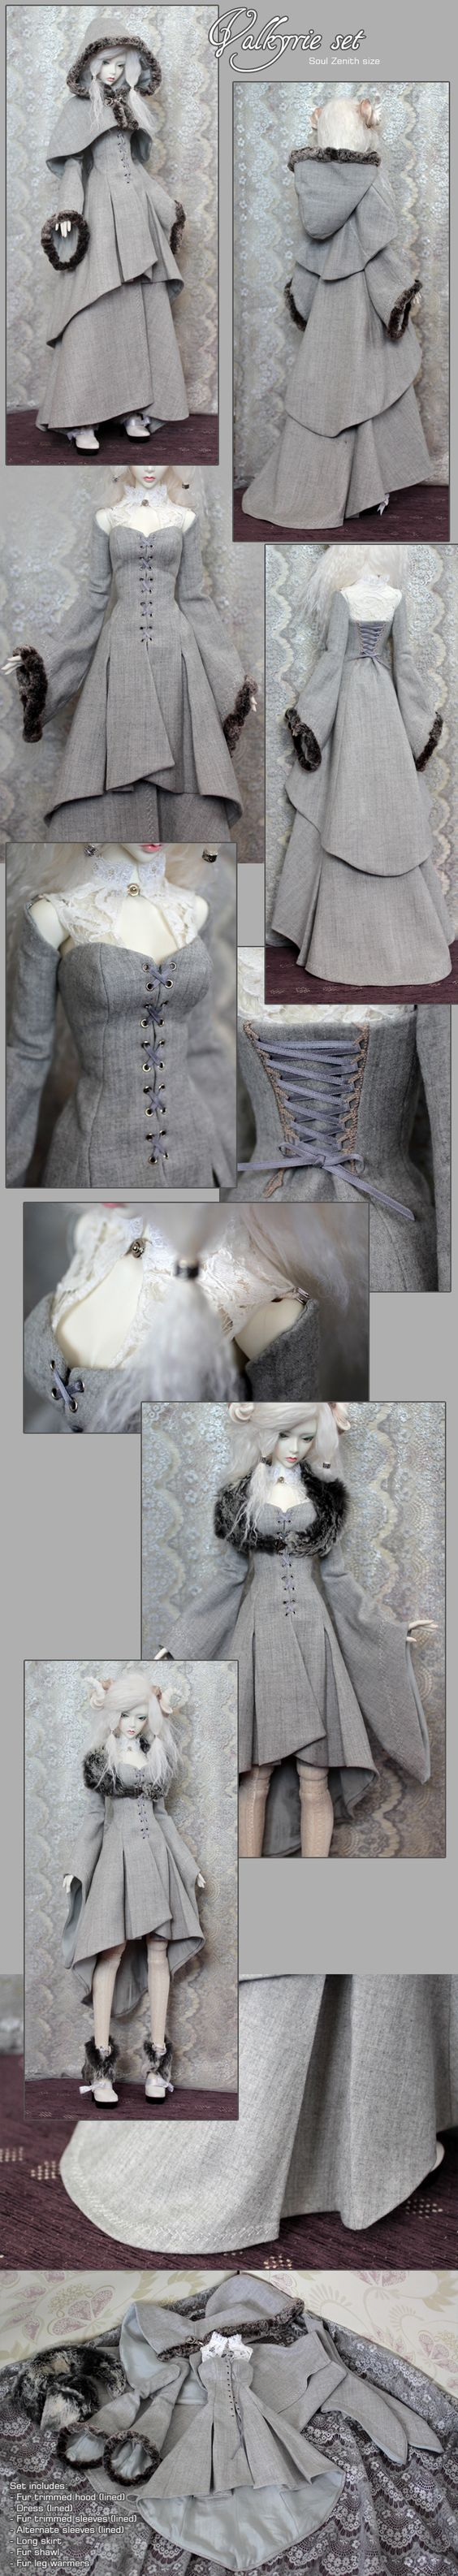 Sigrun's Valkyrie Set by *yenna-photo on deviantART - pretty sure this is for a doll but want this outfit so badly!